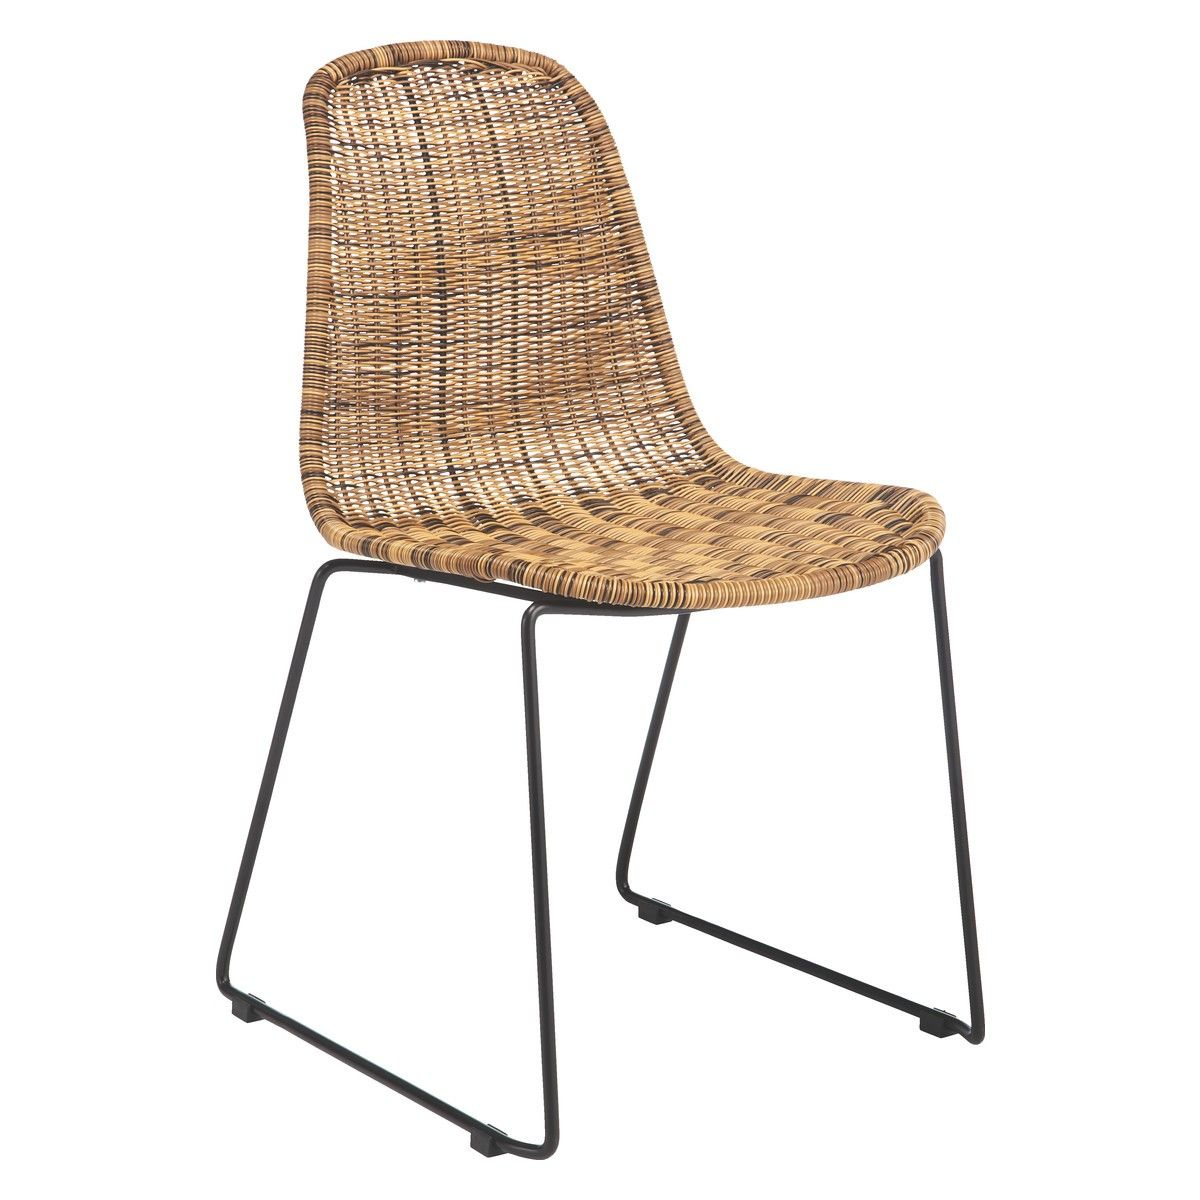 Acapulco chair cb2 - Mickey Synthetic Rattan Dining Chair